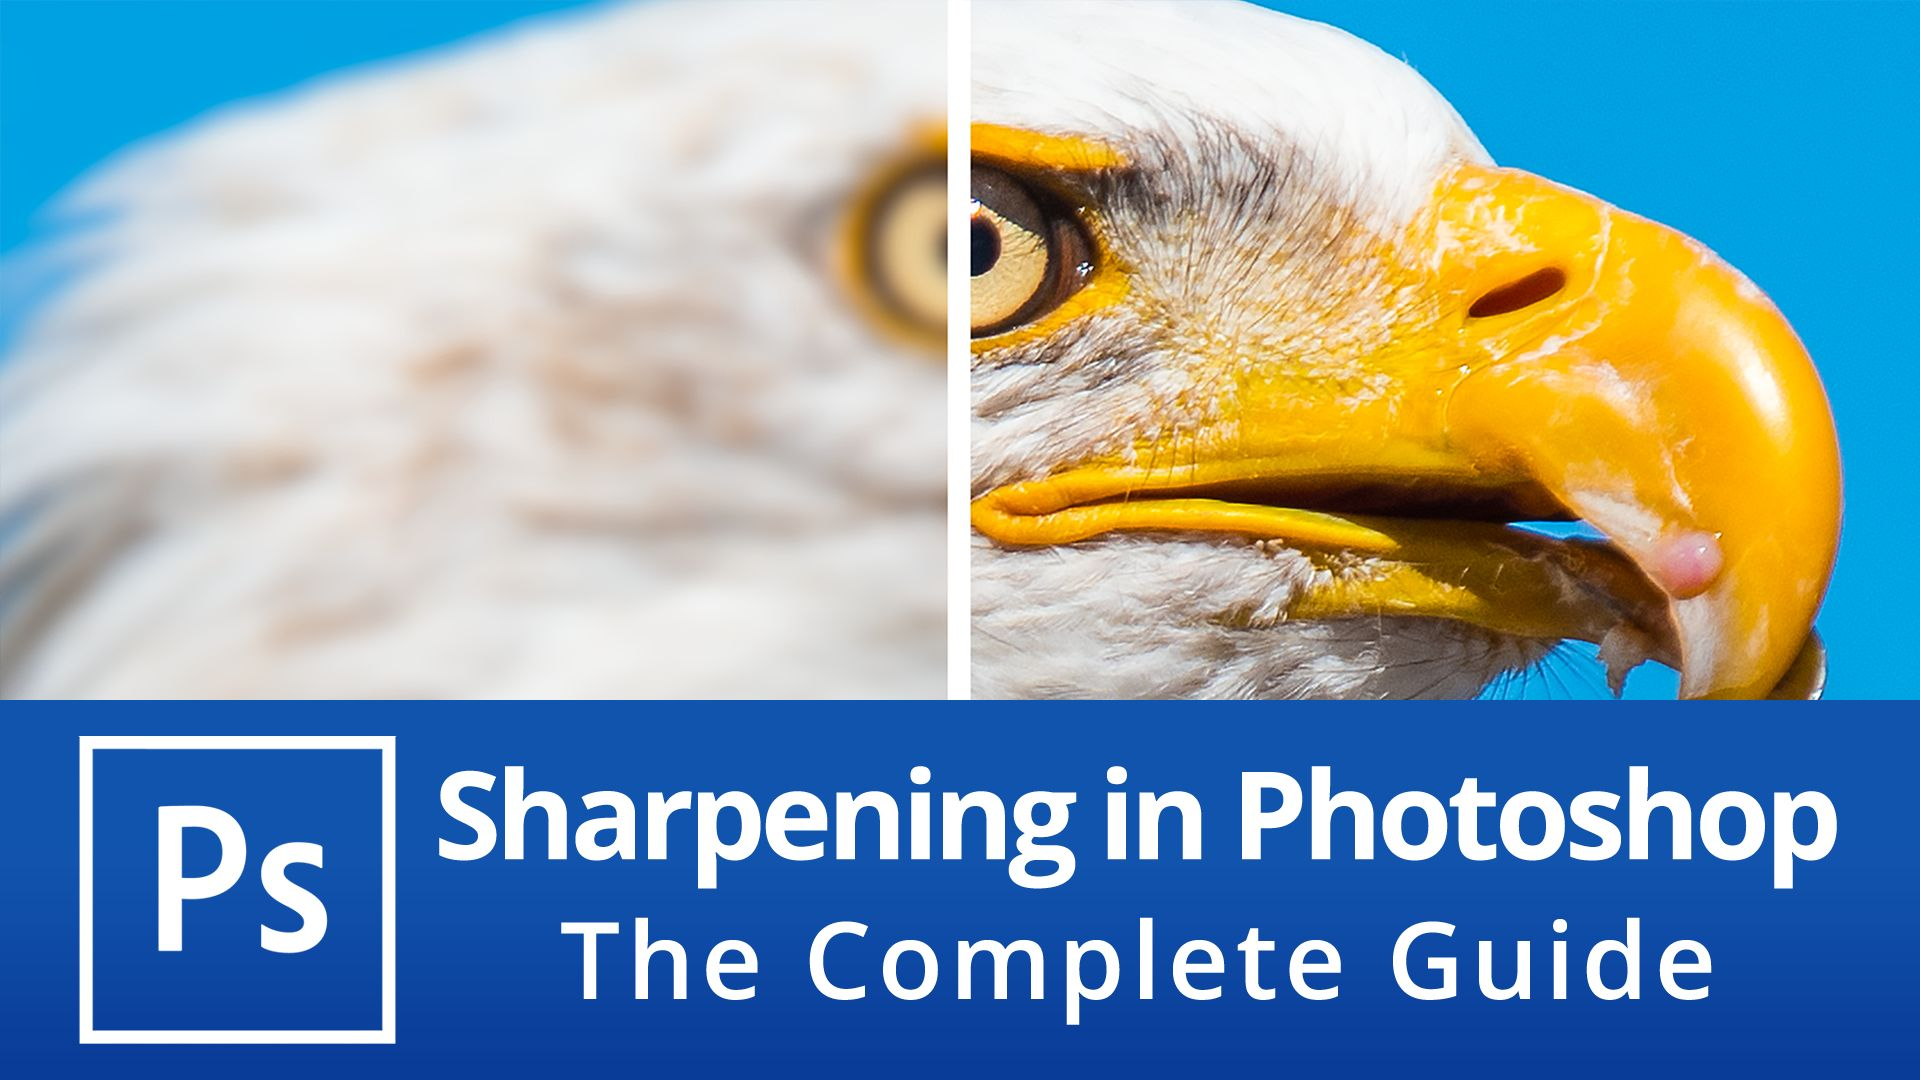 Sharpening in Photoshop – The Complete Guide